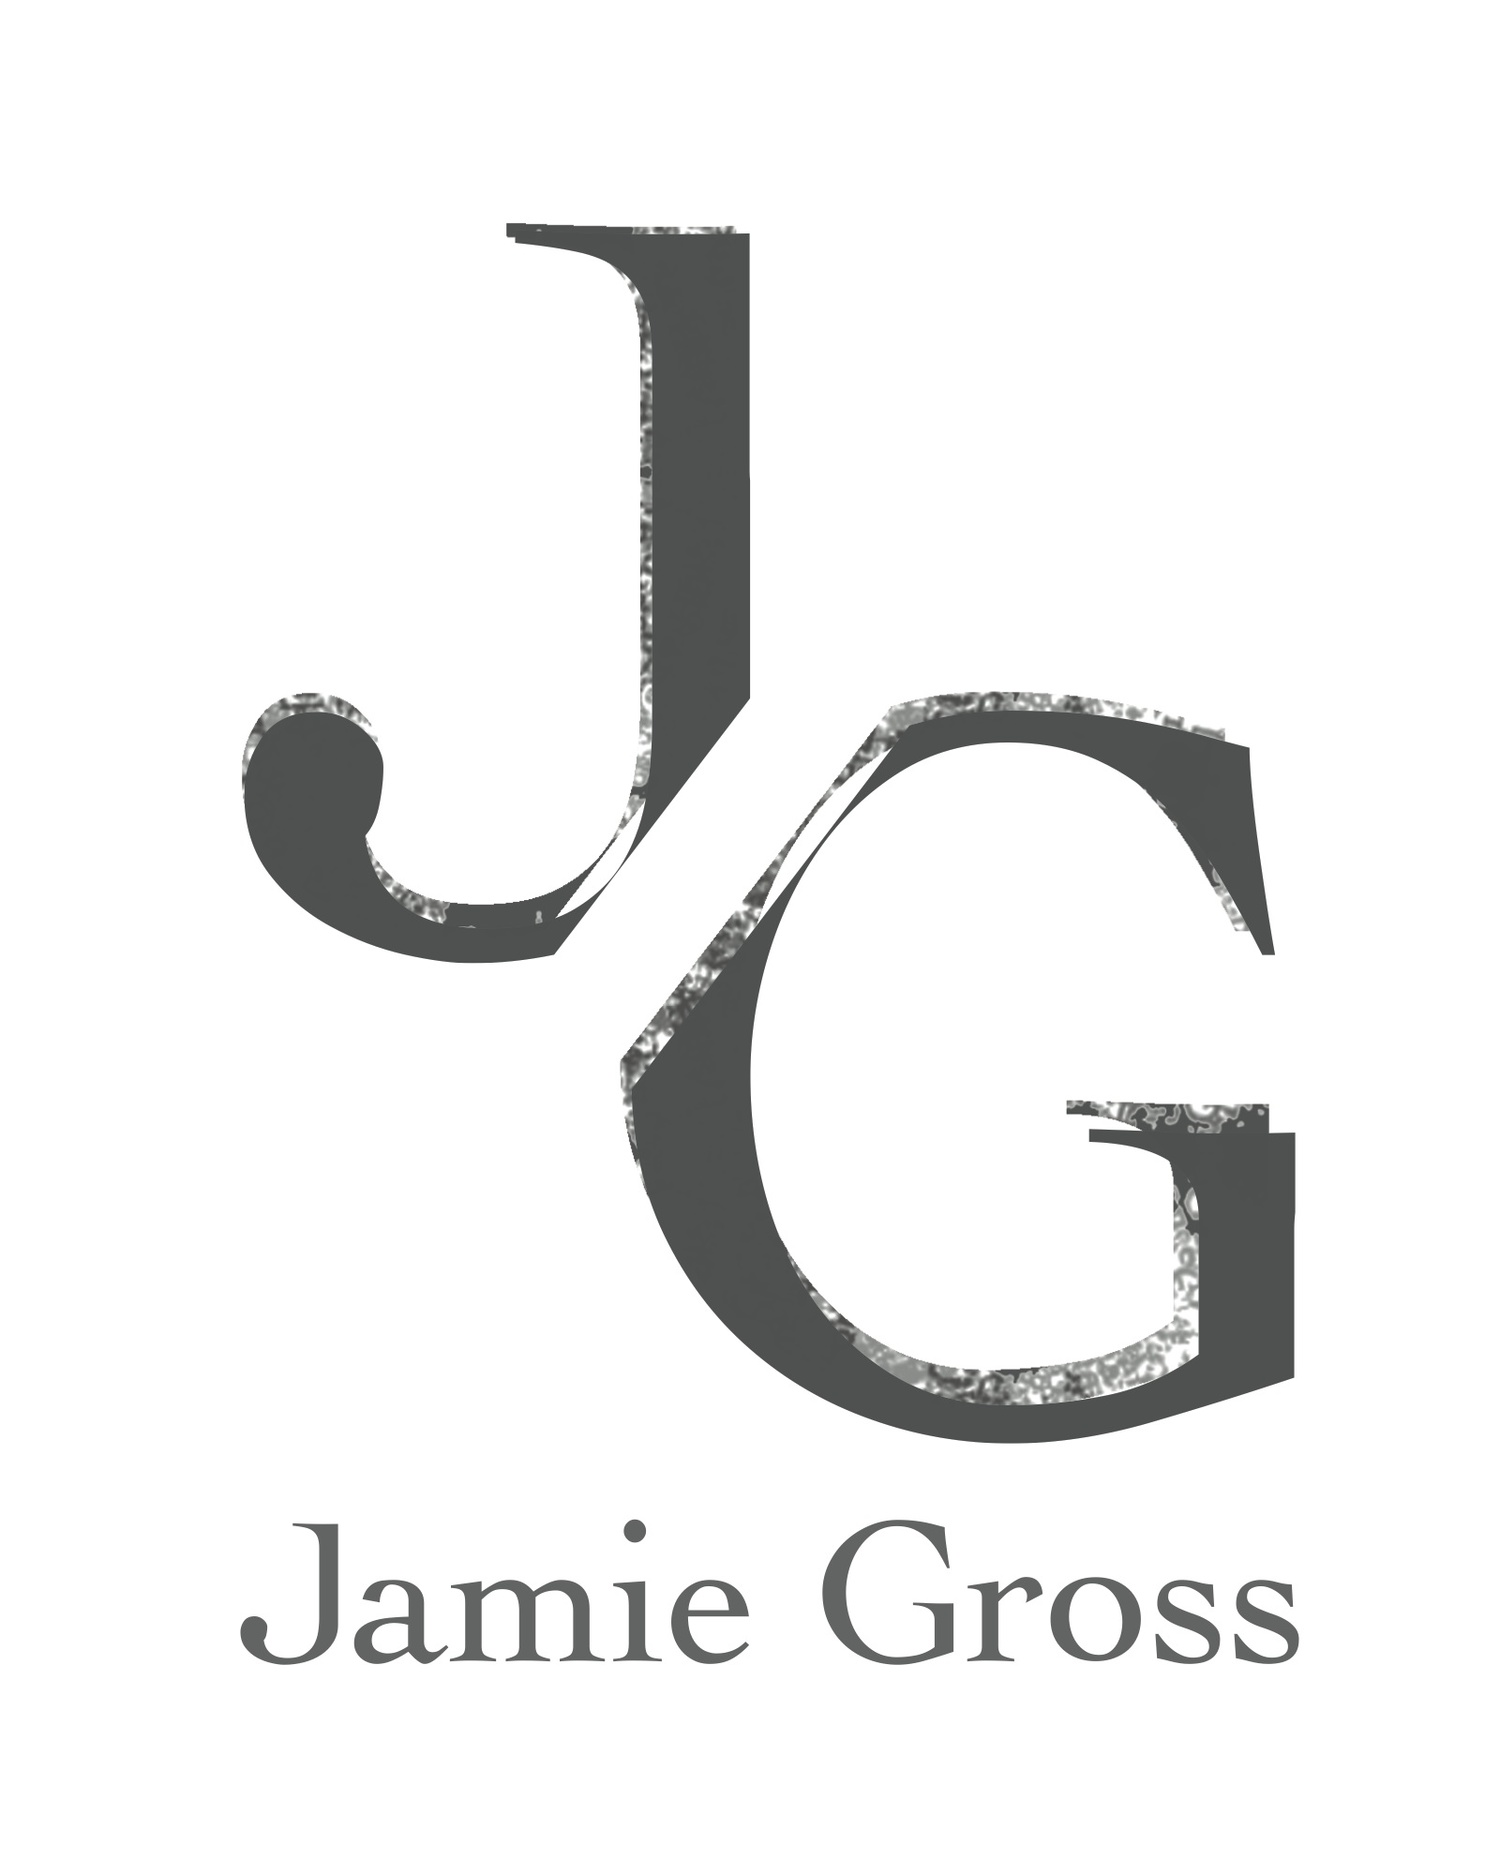 resume jamie gross costume design